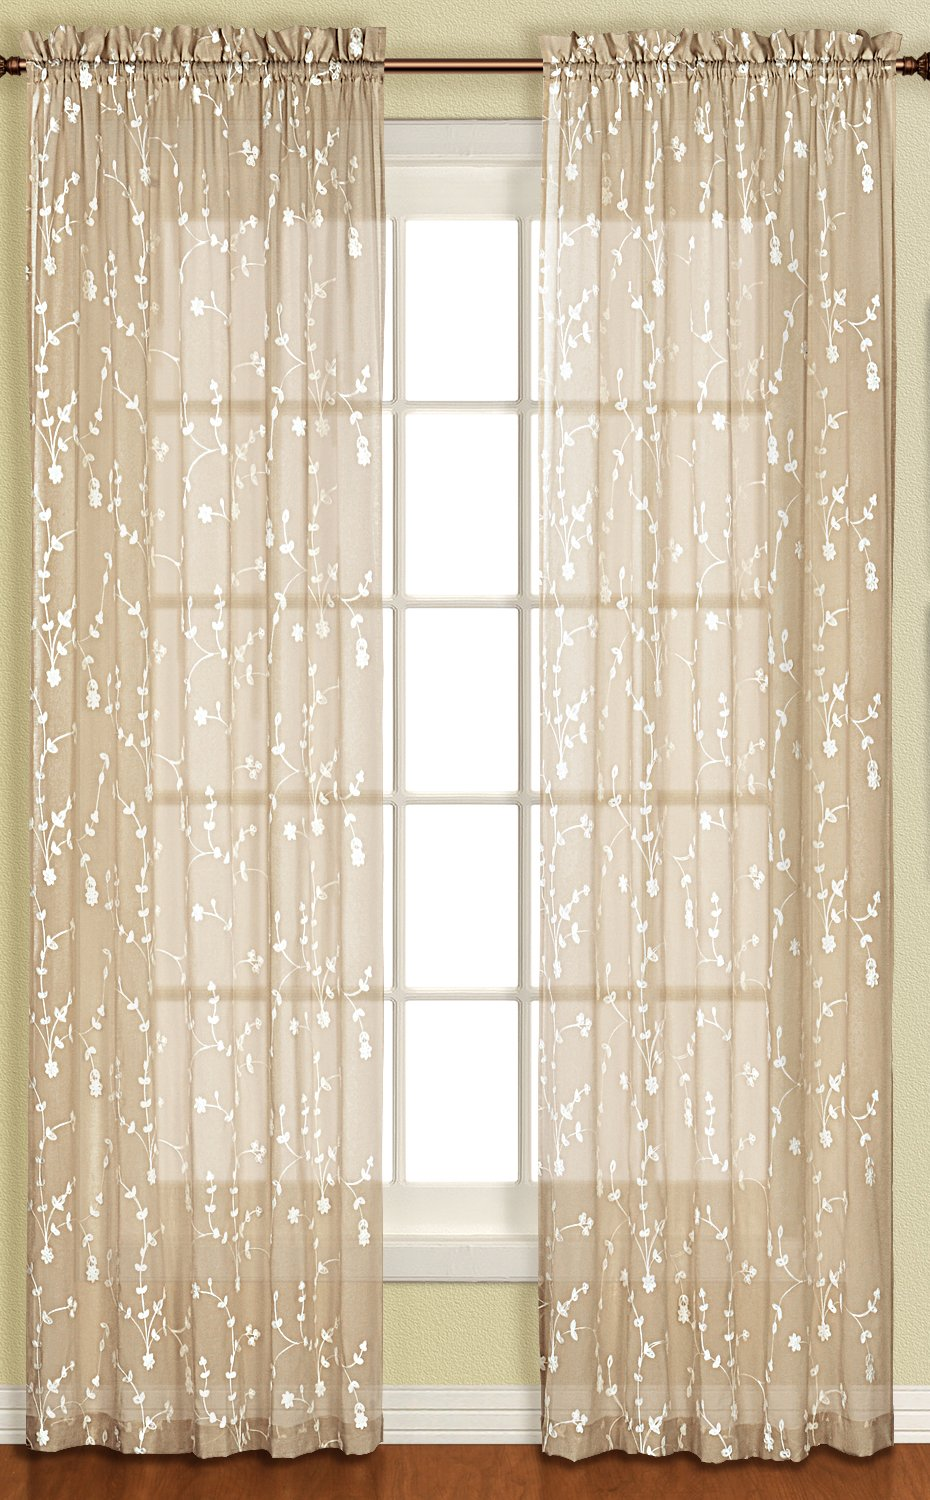 Cortina unida de la cortina de savannah panel envio for Como blanquear cortinas